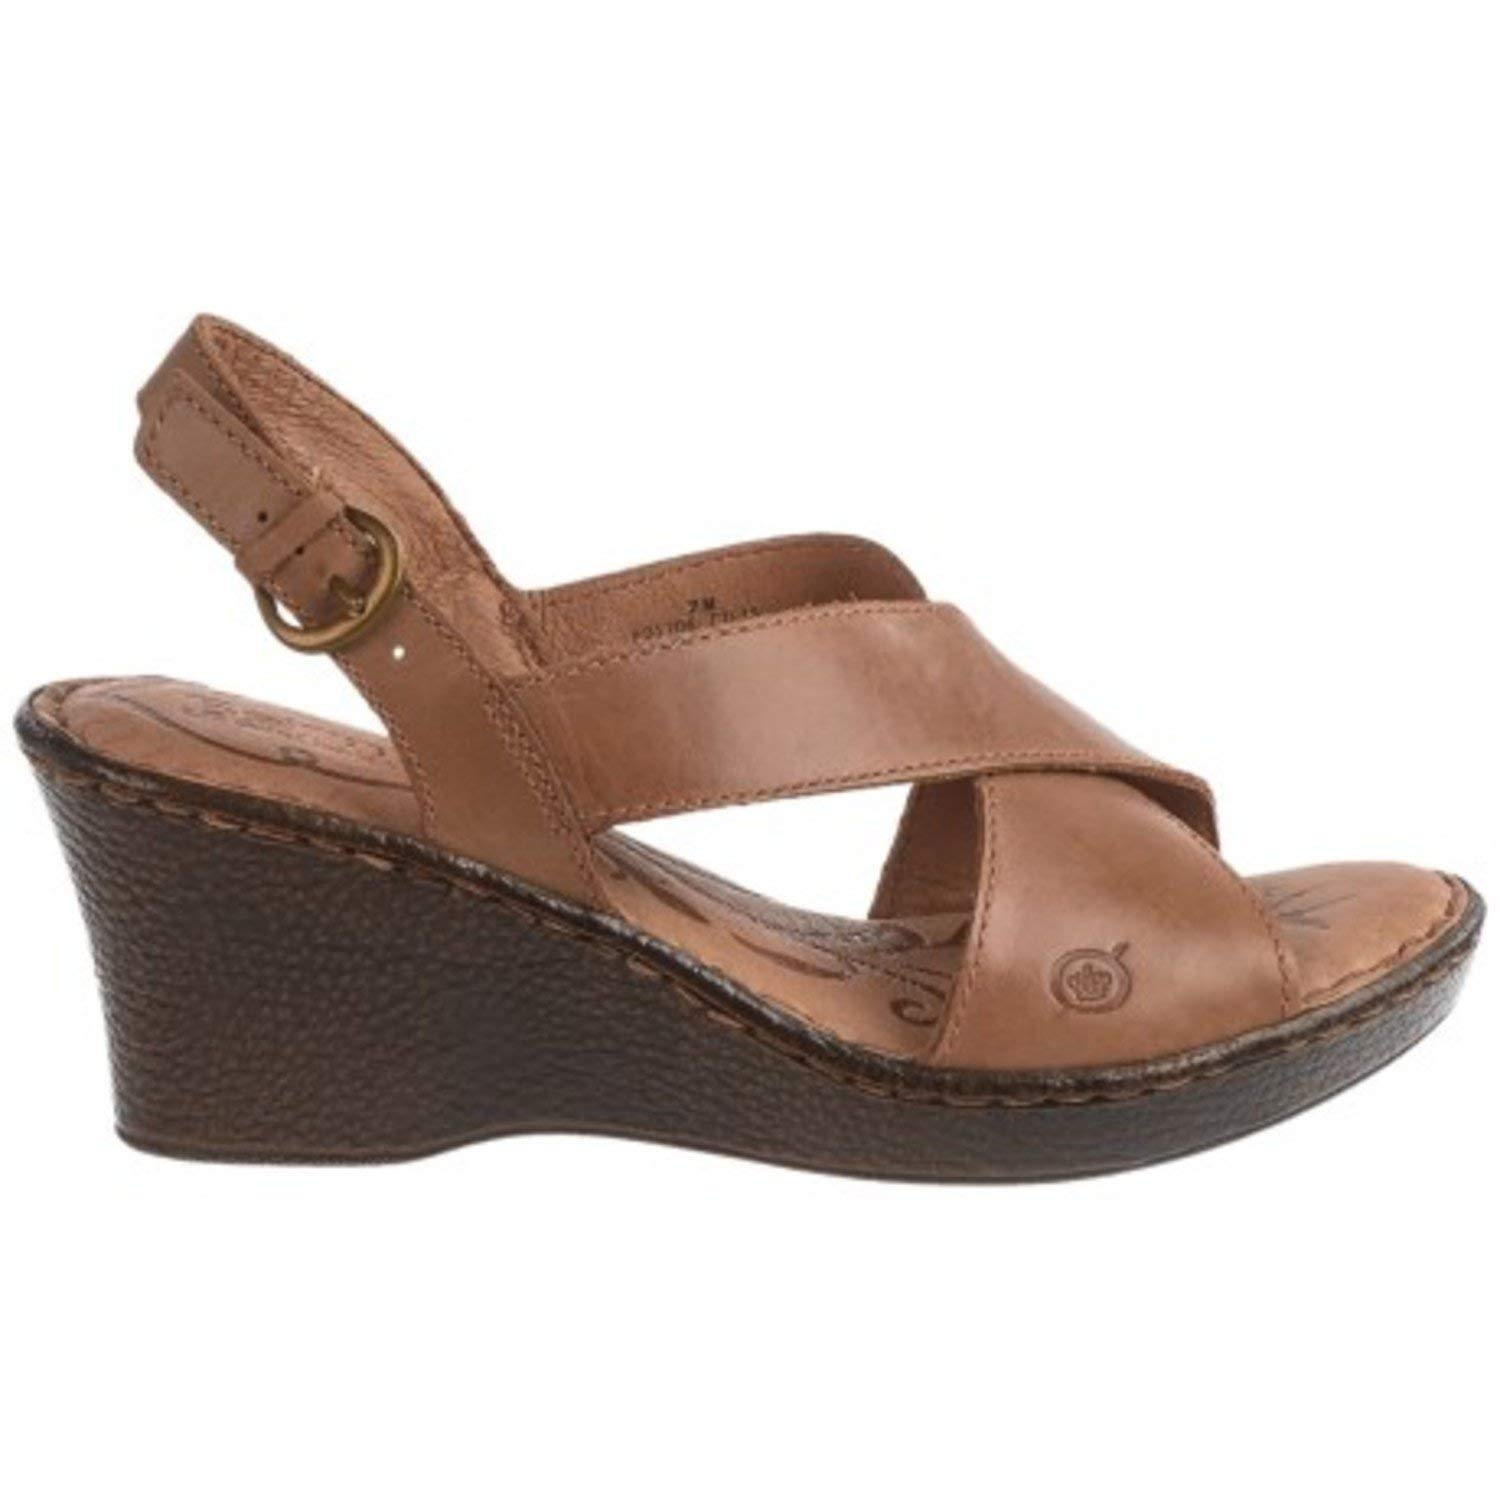 024b47d13be9 Get Quotations · Born Ashley Cross-Strap NUT Leather Wedge Sandals Size  7